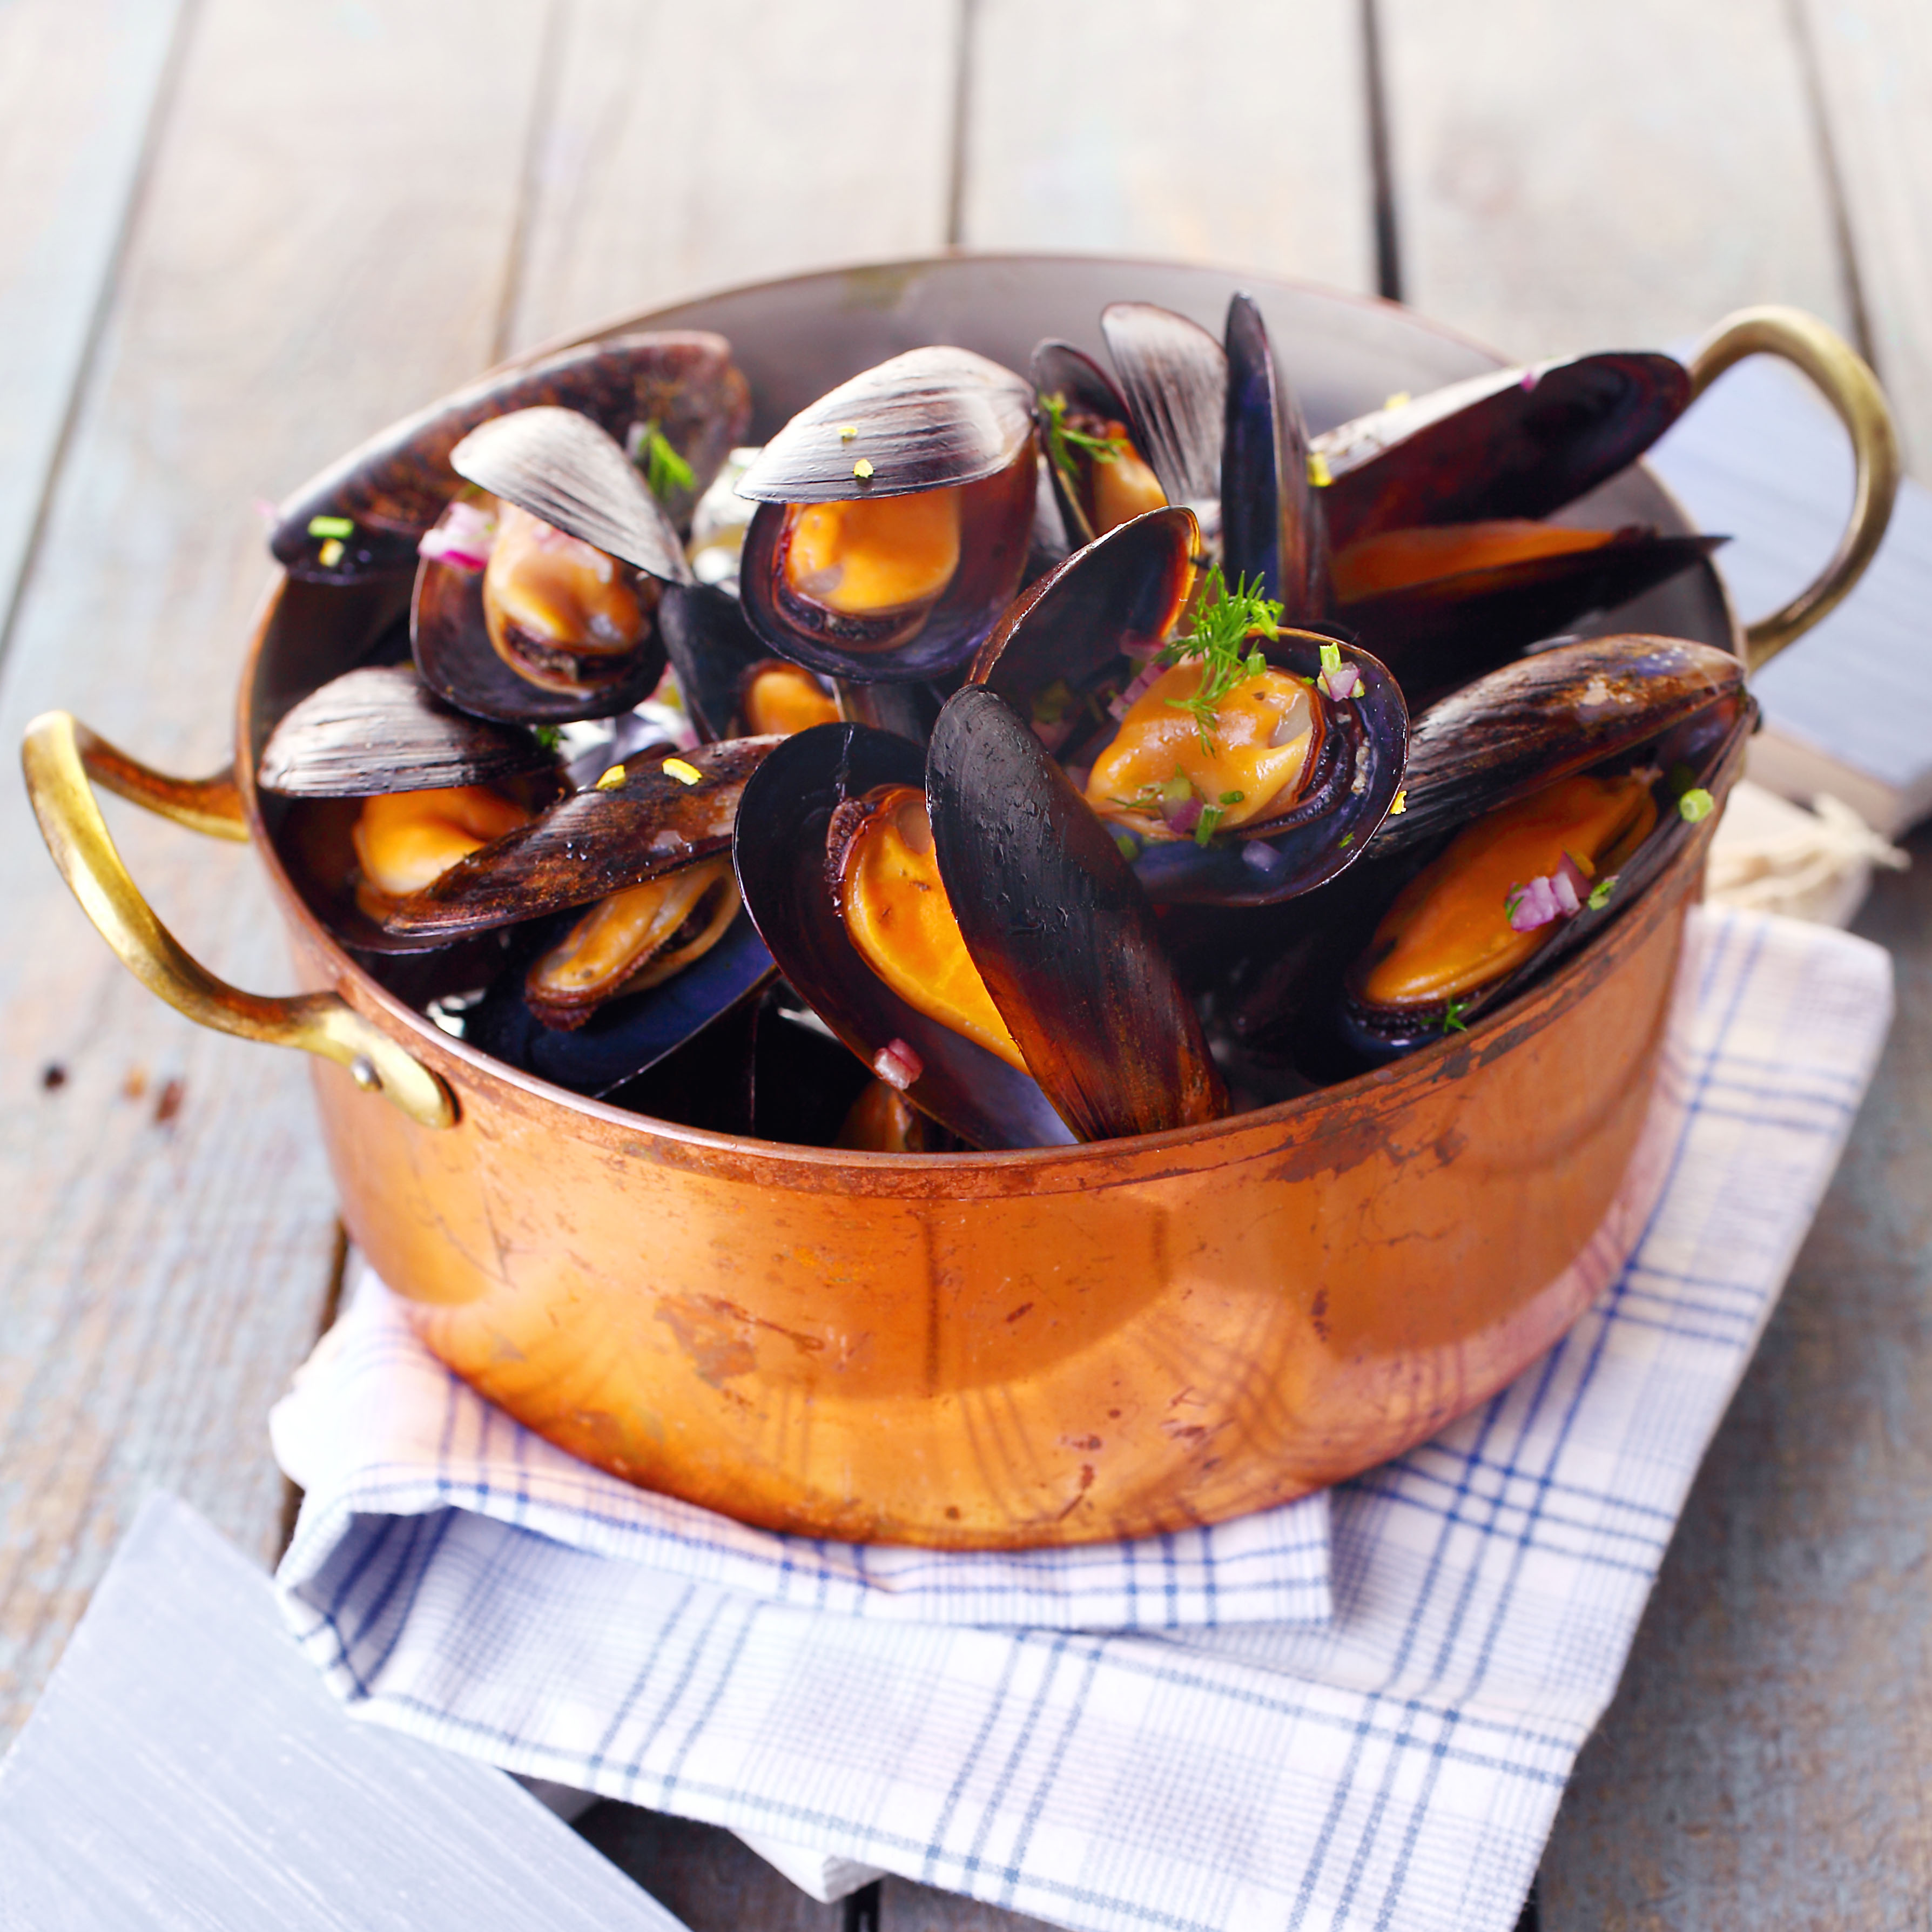 Eat seafood and mussels by the sea